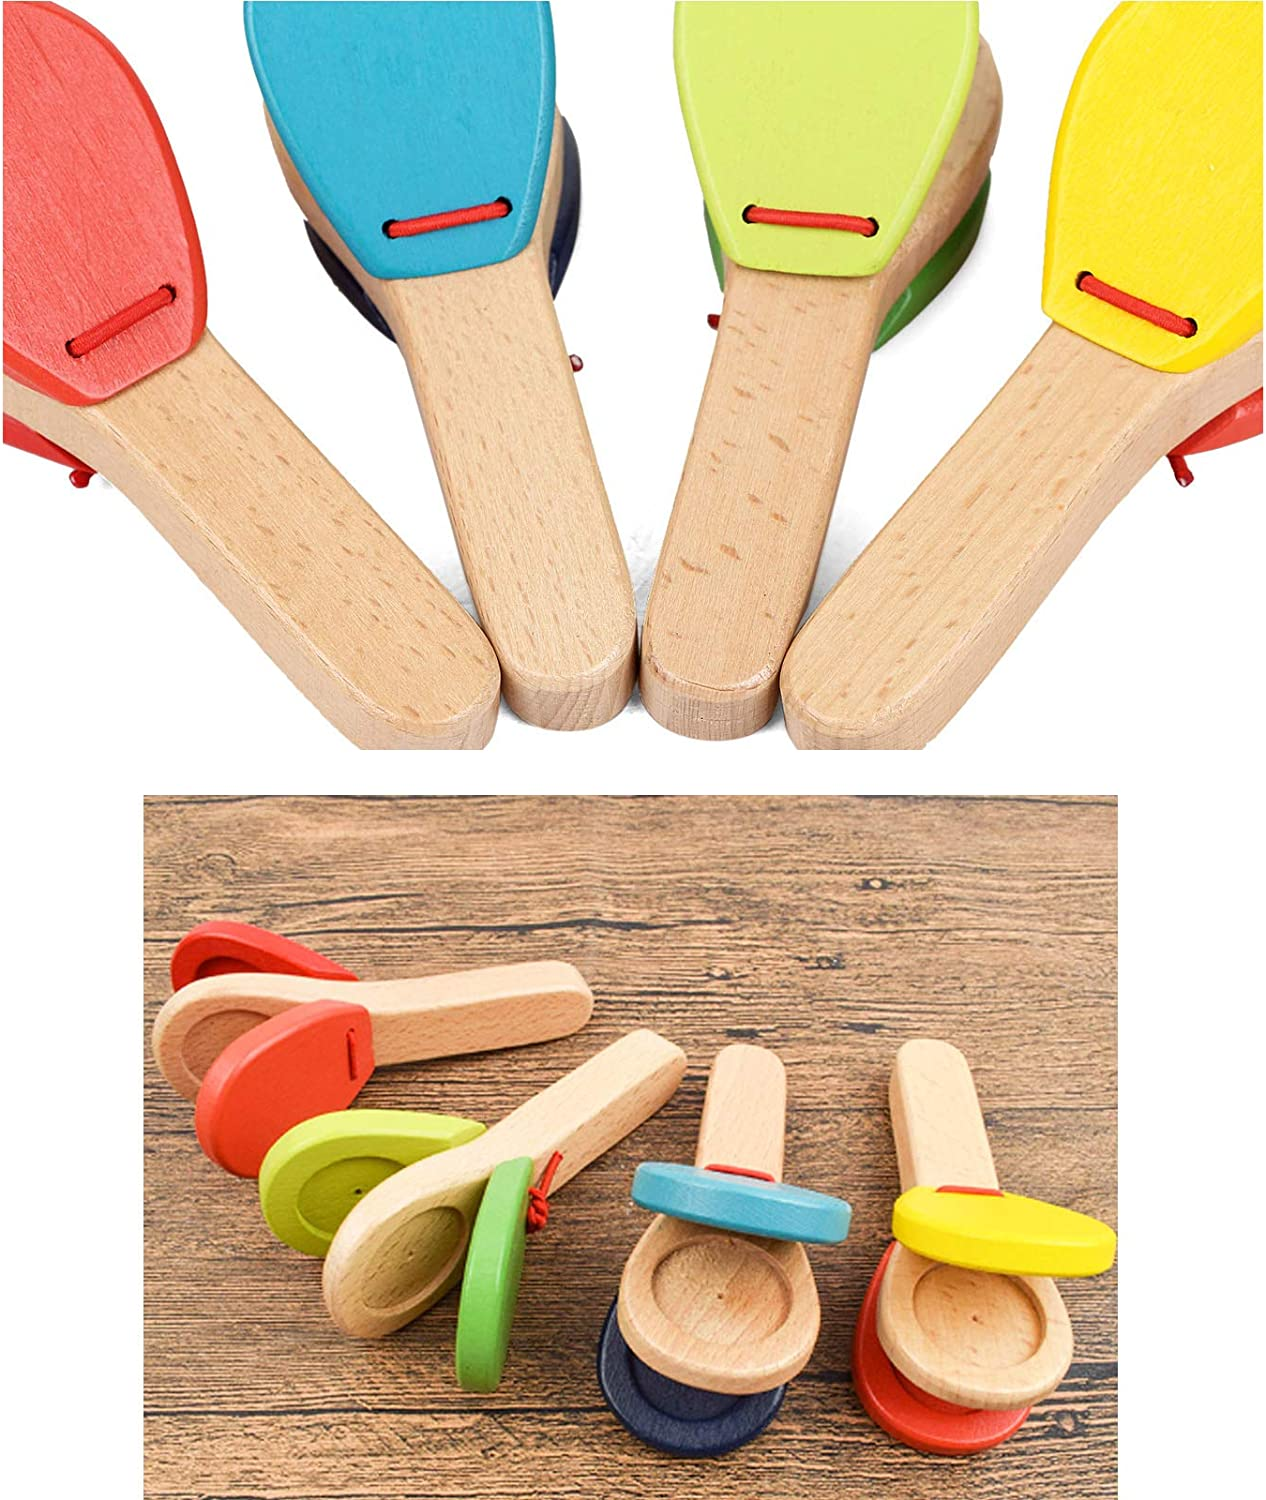 Hand-cranked pat Wooden Gift LiLiy 2 Pcs,Innovative Color Wooden Percussion Toy